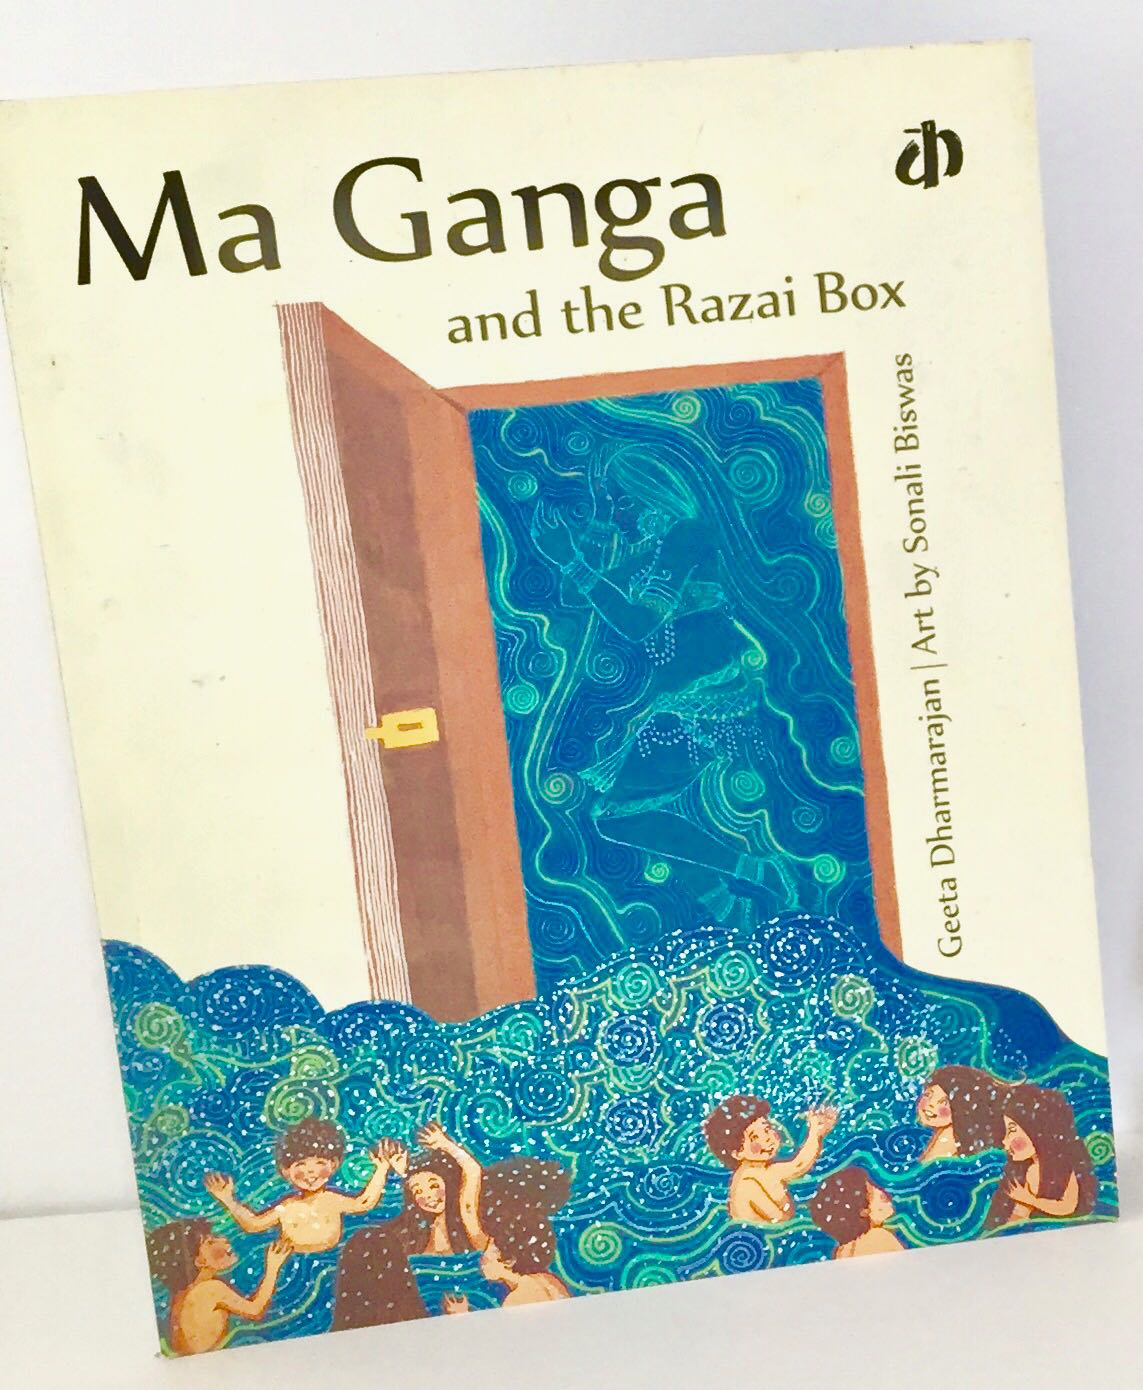 Ma Ganga and the Razai Box